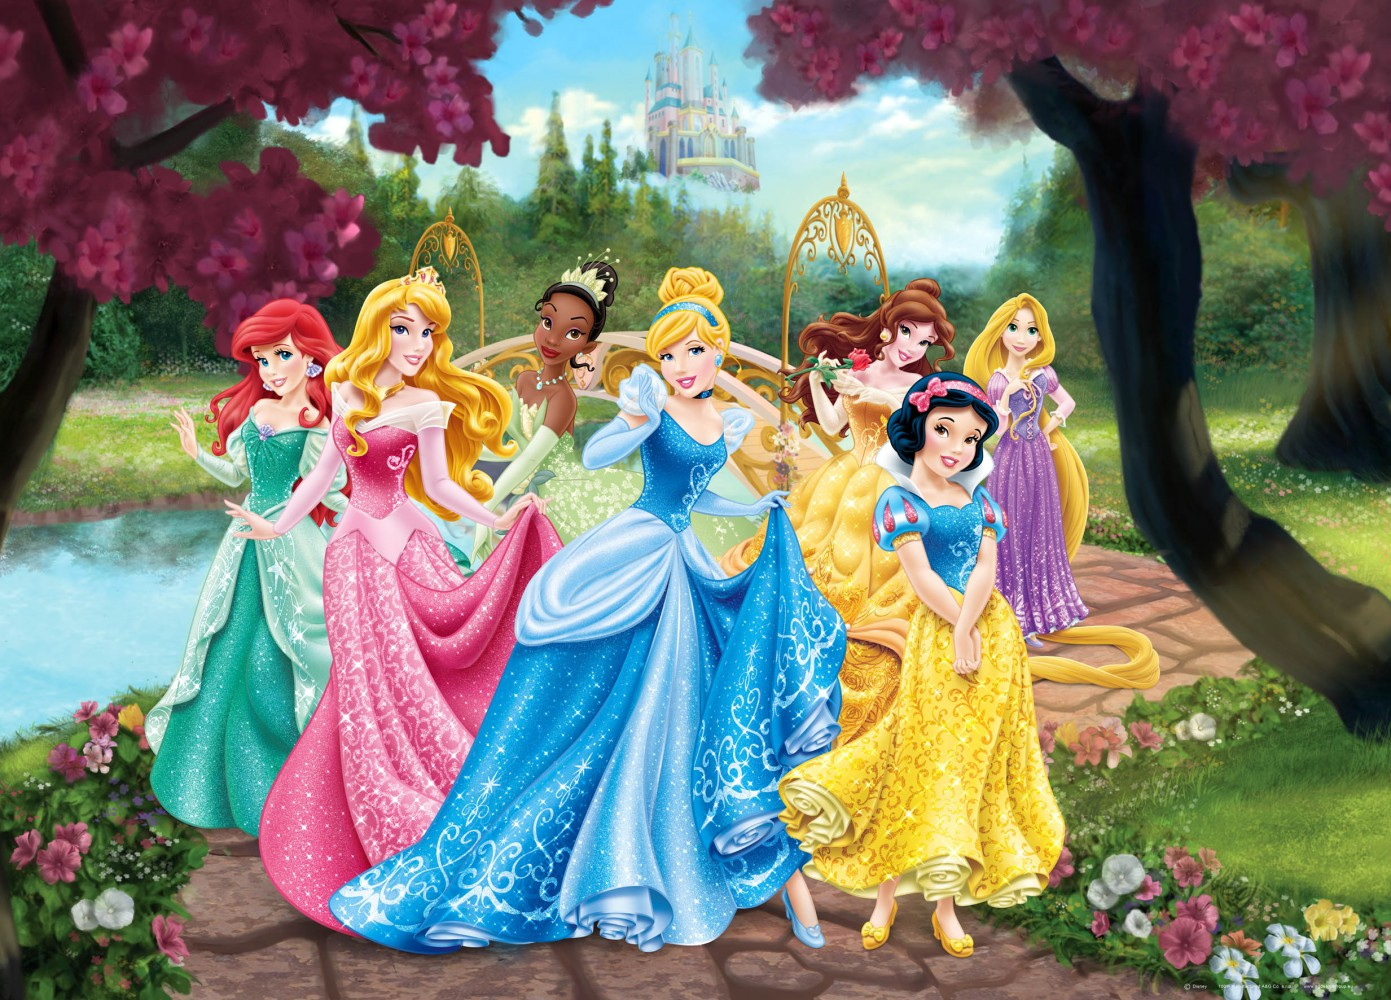 XXL poster wall mural wallpaper Disney princesses princess photo 160 1391x1000